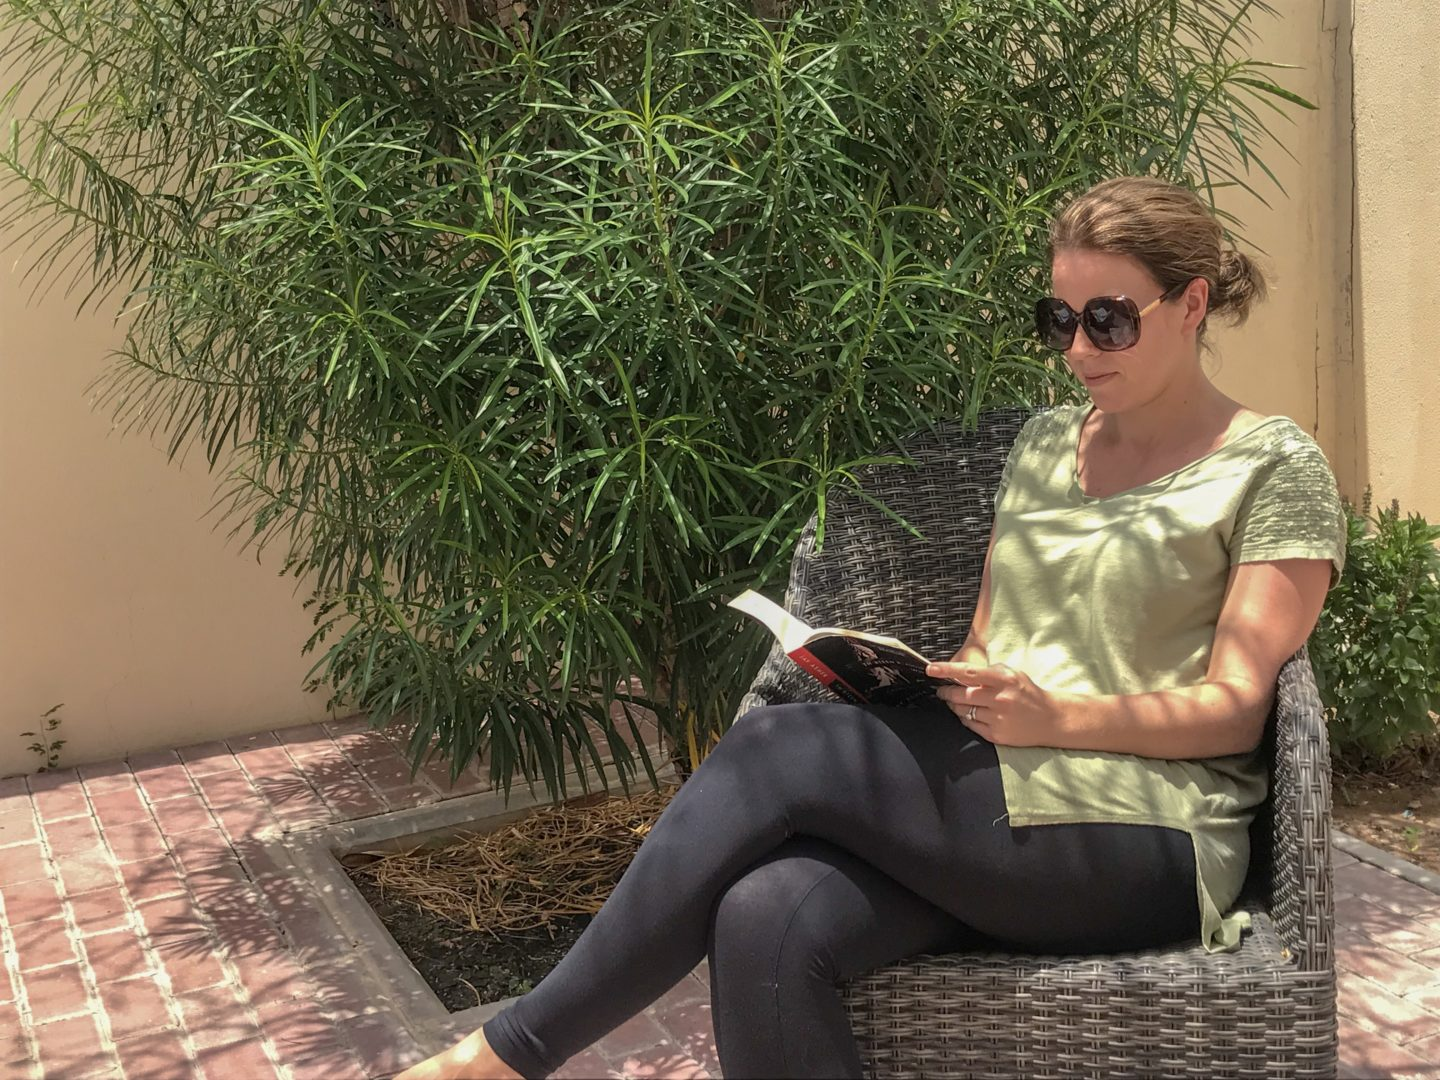 Summer reading recommendations from real people